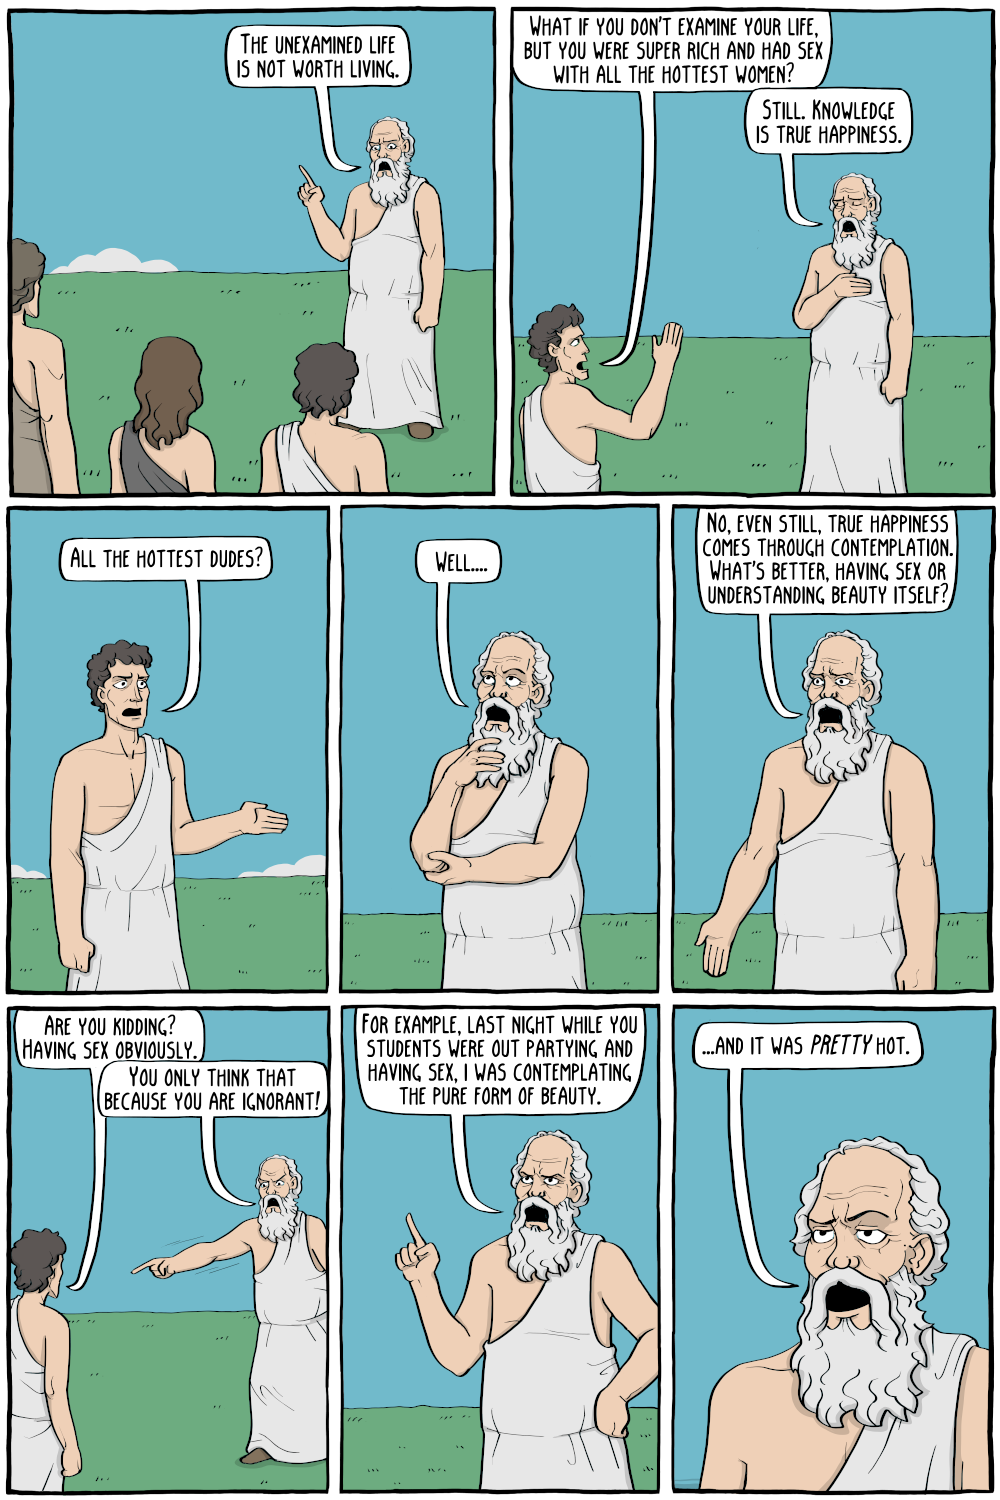 """Socrates: """"The unexamined life is not worth living. """"  Student: """"What if you don't examine your life, but you were super rich and had sex with all the hottest women?""""  Socrates: """"Still. Knowledge is true happiness.""""  Student: """"All the hottest dudes?""""  Socrates, considering: """"Well...."""" Socrates: """"No, even still, true happiness comes through contemplation. What's better, having sex or understanding beauty itself?""""  Student: """"Are you kidding? Having sex obviously.""""  Socrates: """"You only think that because you are ignorant!""""  Socrates: """"For example, last night while you students were out partying and having sex, i was contemplating the pure form of beauty.""""  Socrates: """"And it was PRETTY hot."""""""